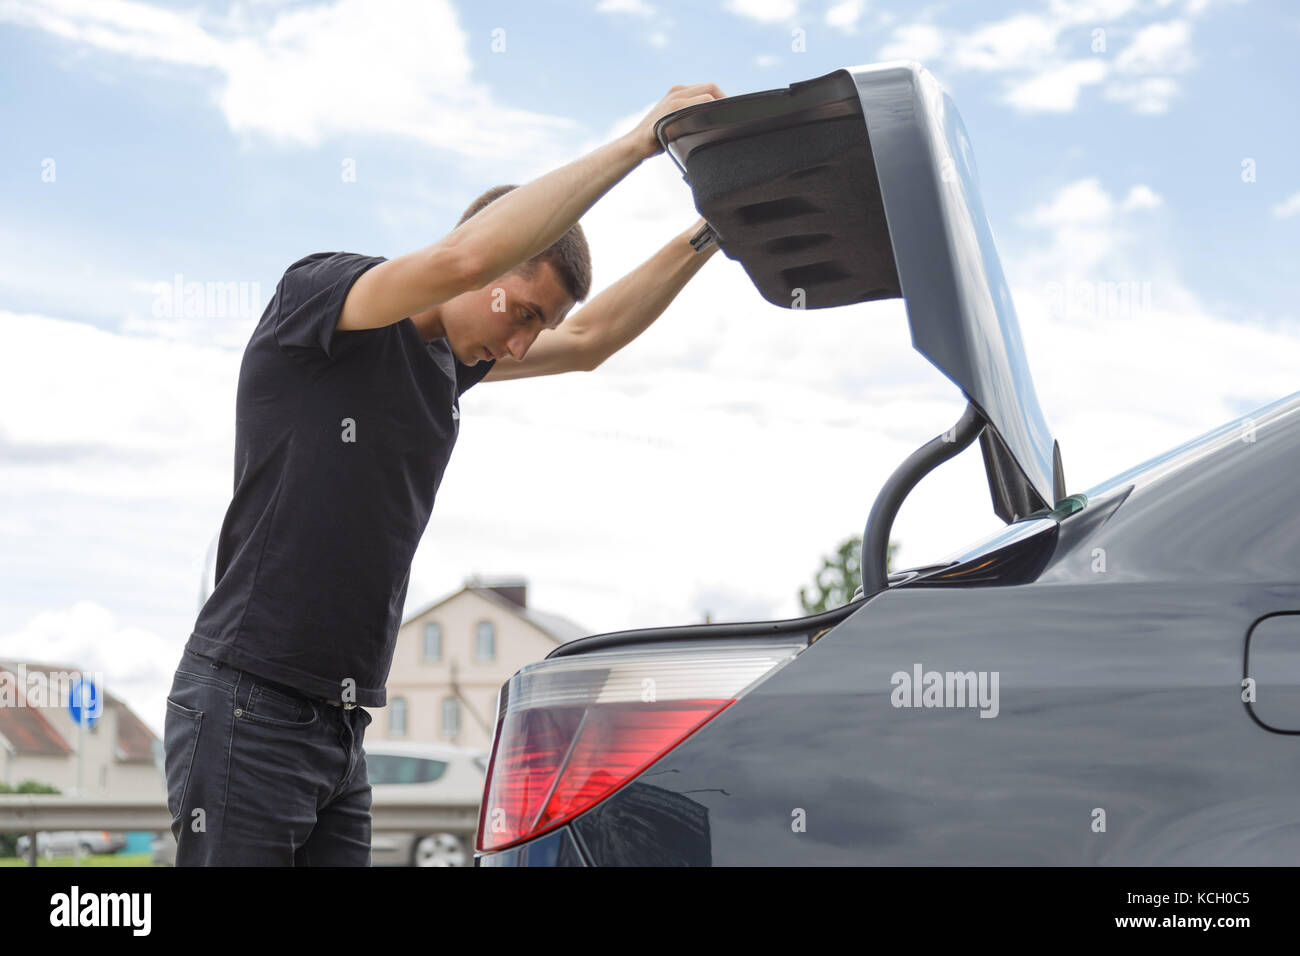 Car broke down on the way. The man opened the trunk to take the tools. Stock Photo